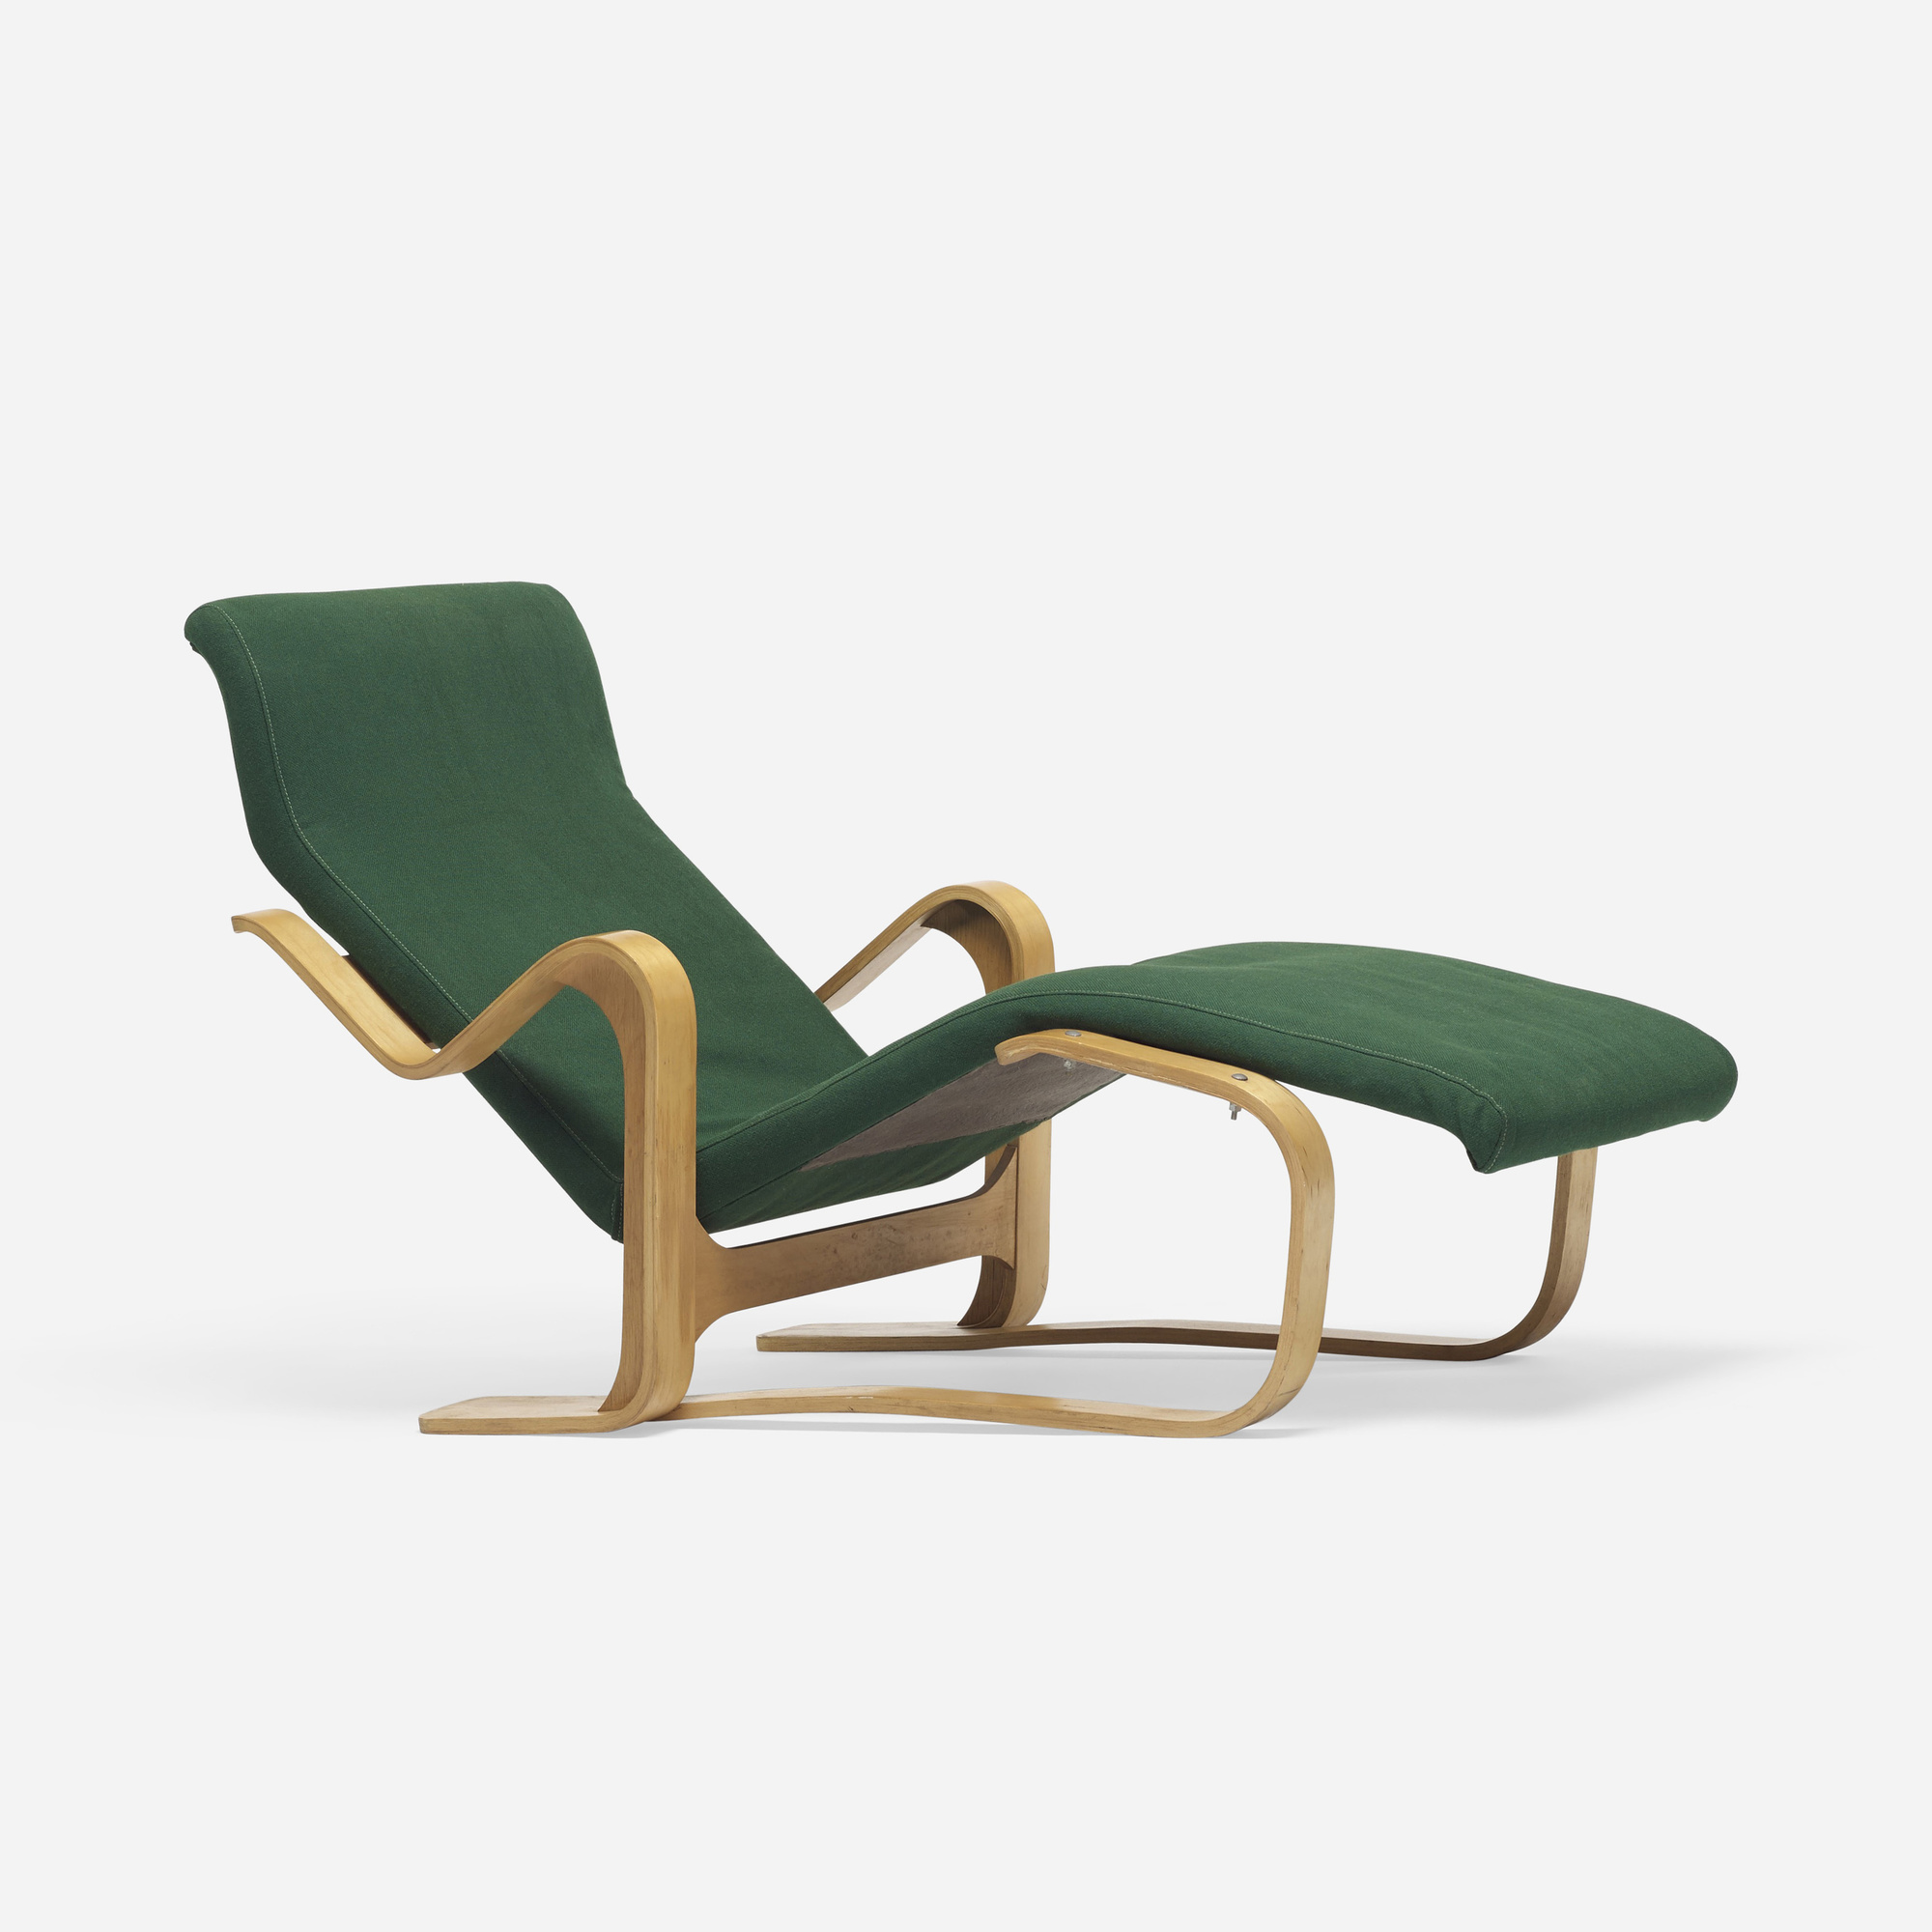 184: Marcel Breuer / Long chaise (1 of 2)